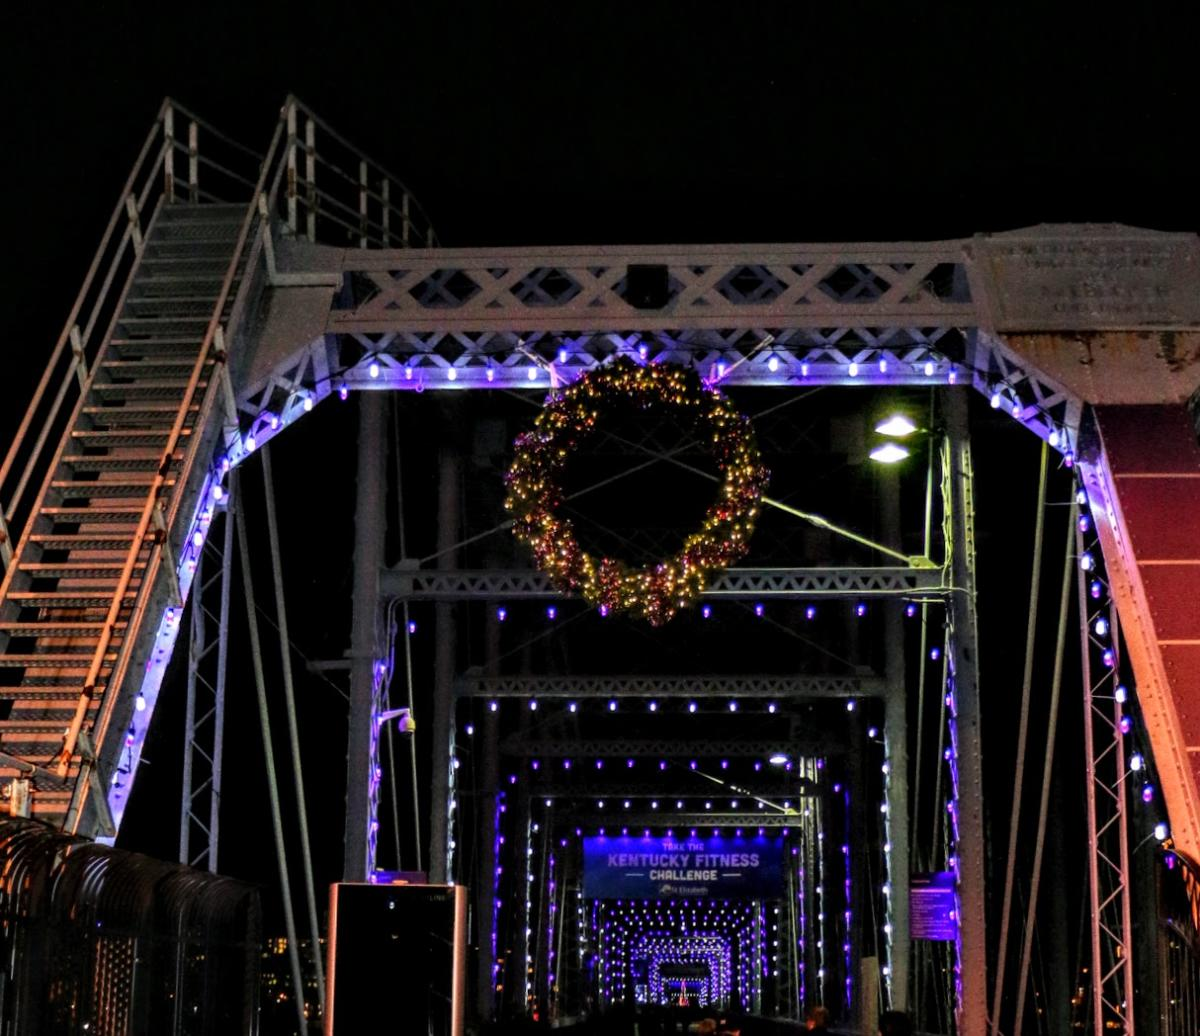 The Purple People Bridge, from Newport Ky to Cincinnati Oh, decorated with Holiday Lights and a Christmas wreath